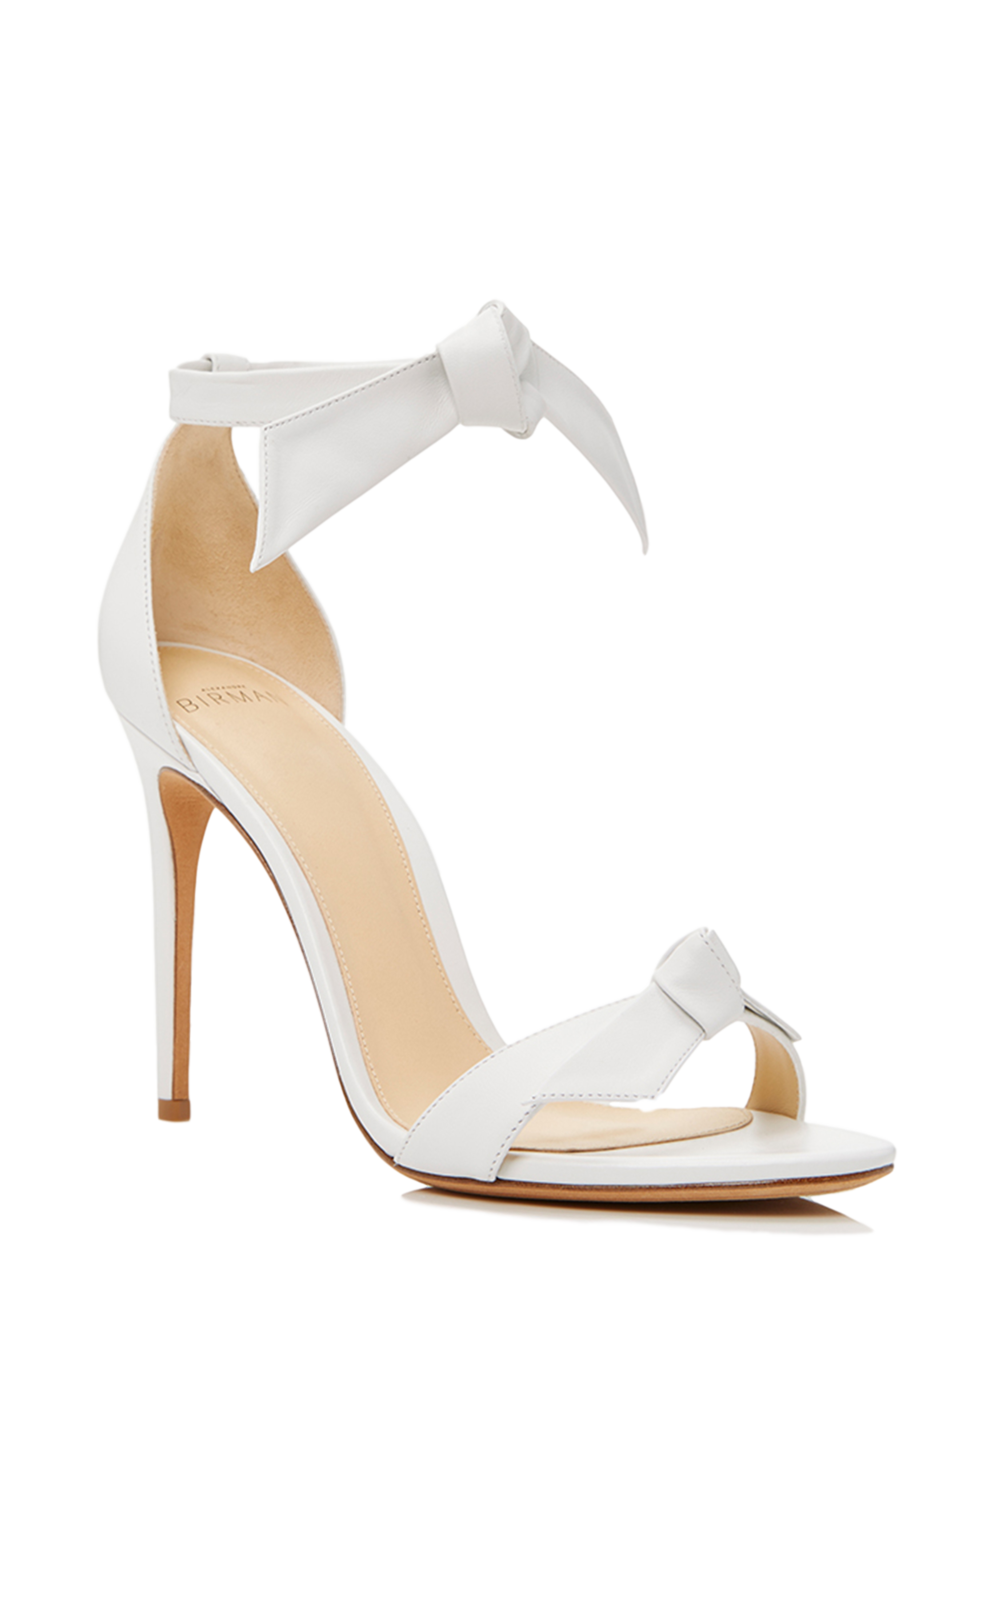 https-__www.modaoperandi.com_alexandre-birman-ss17_clarita-leather-sandals_clipped_rev_1.png